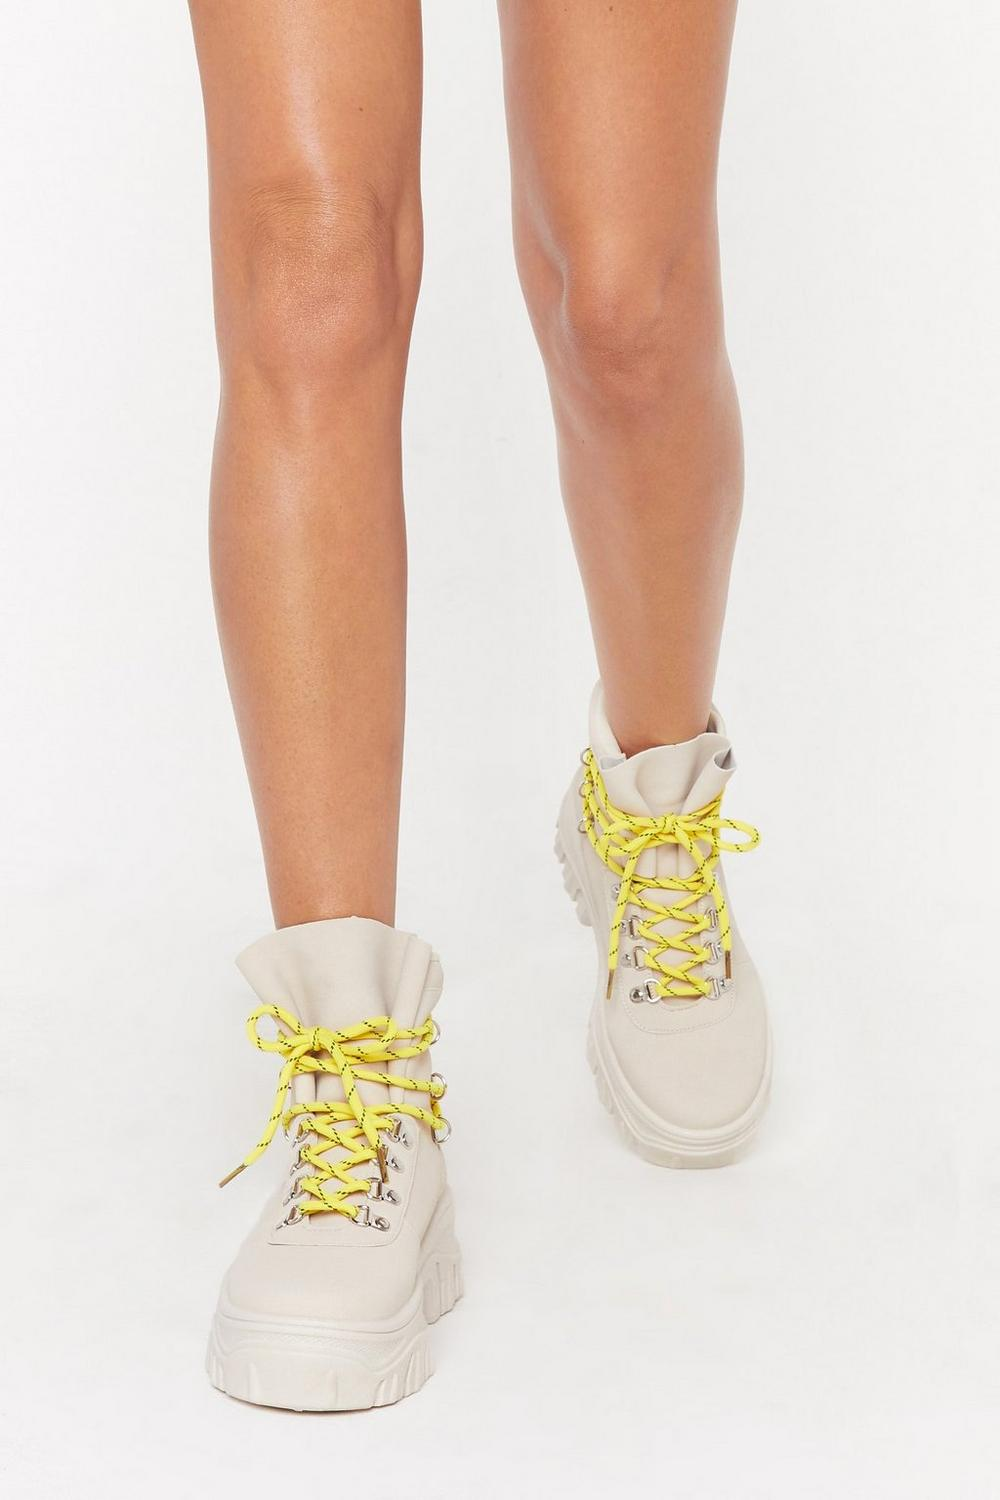 Don't Lace 'em High Top Lace Up Sneakers by Nasty Gal